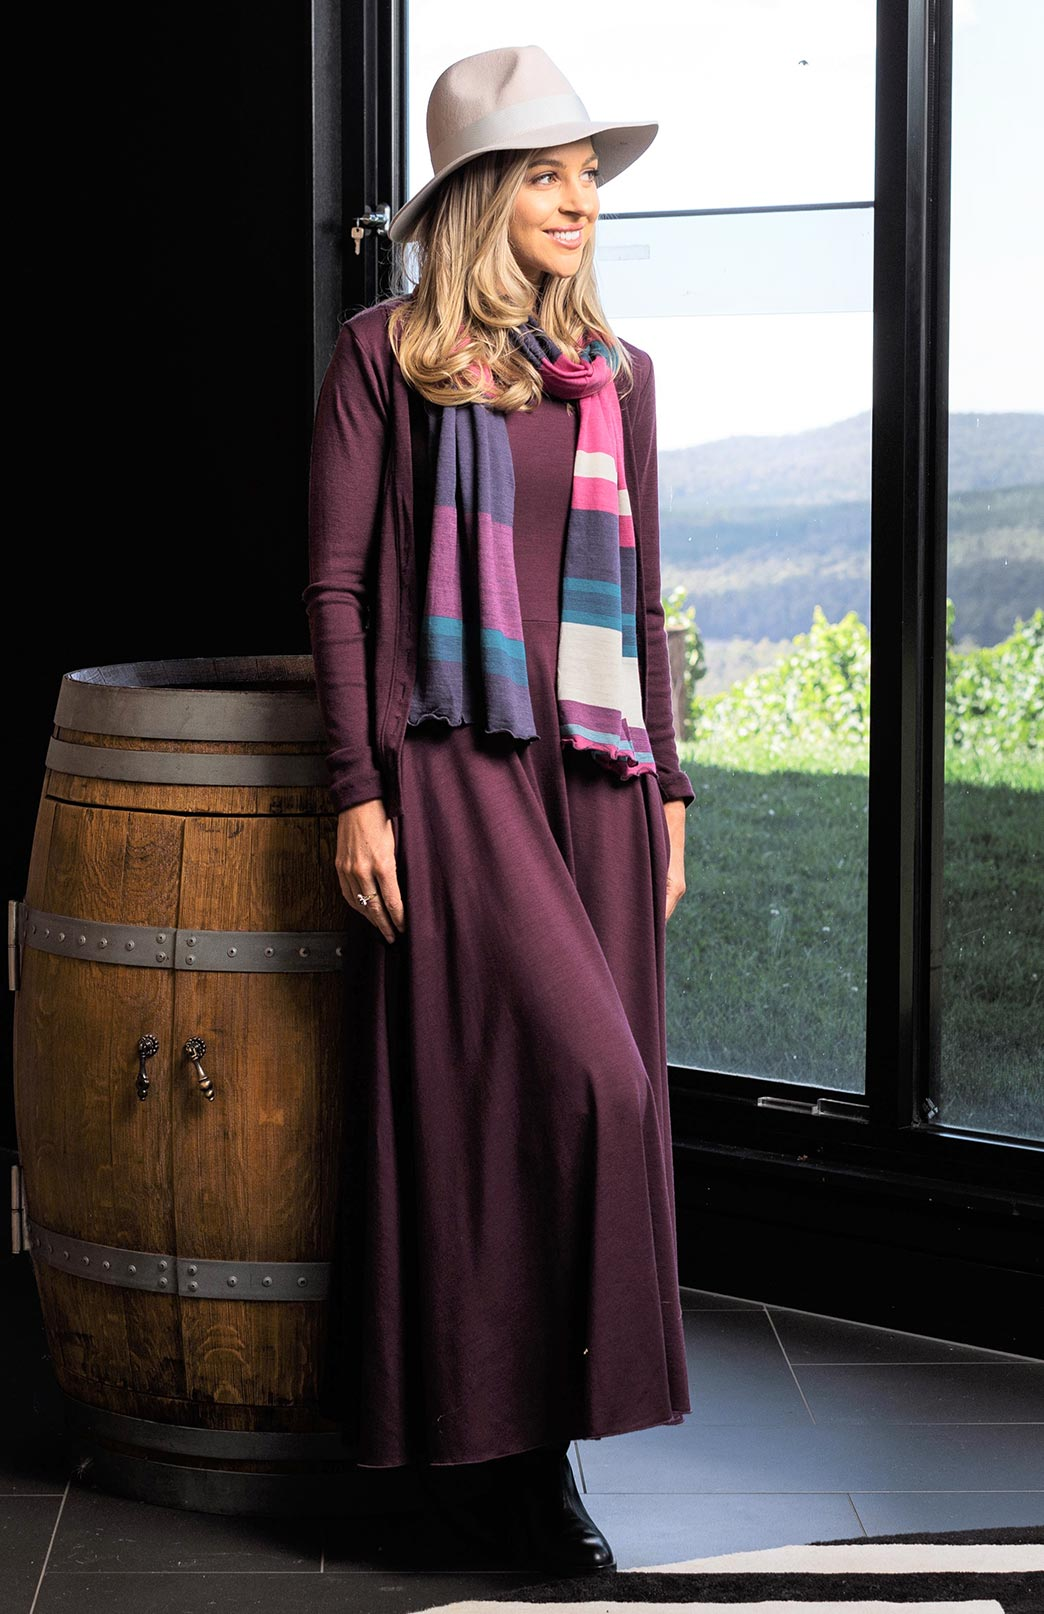 Flo Dress - Women's purple sleeveless merino wool dress with high neckline, side pockets, long skirt and true waist - Smitten Merino Tasmania Australia